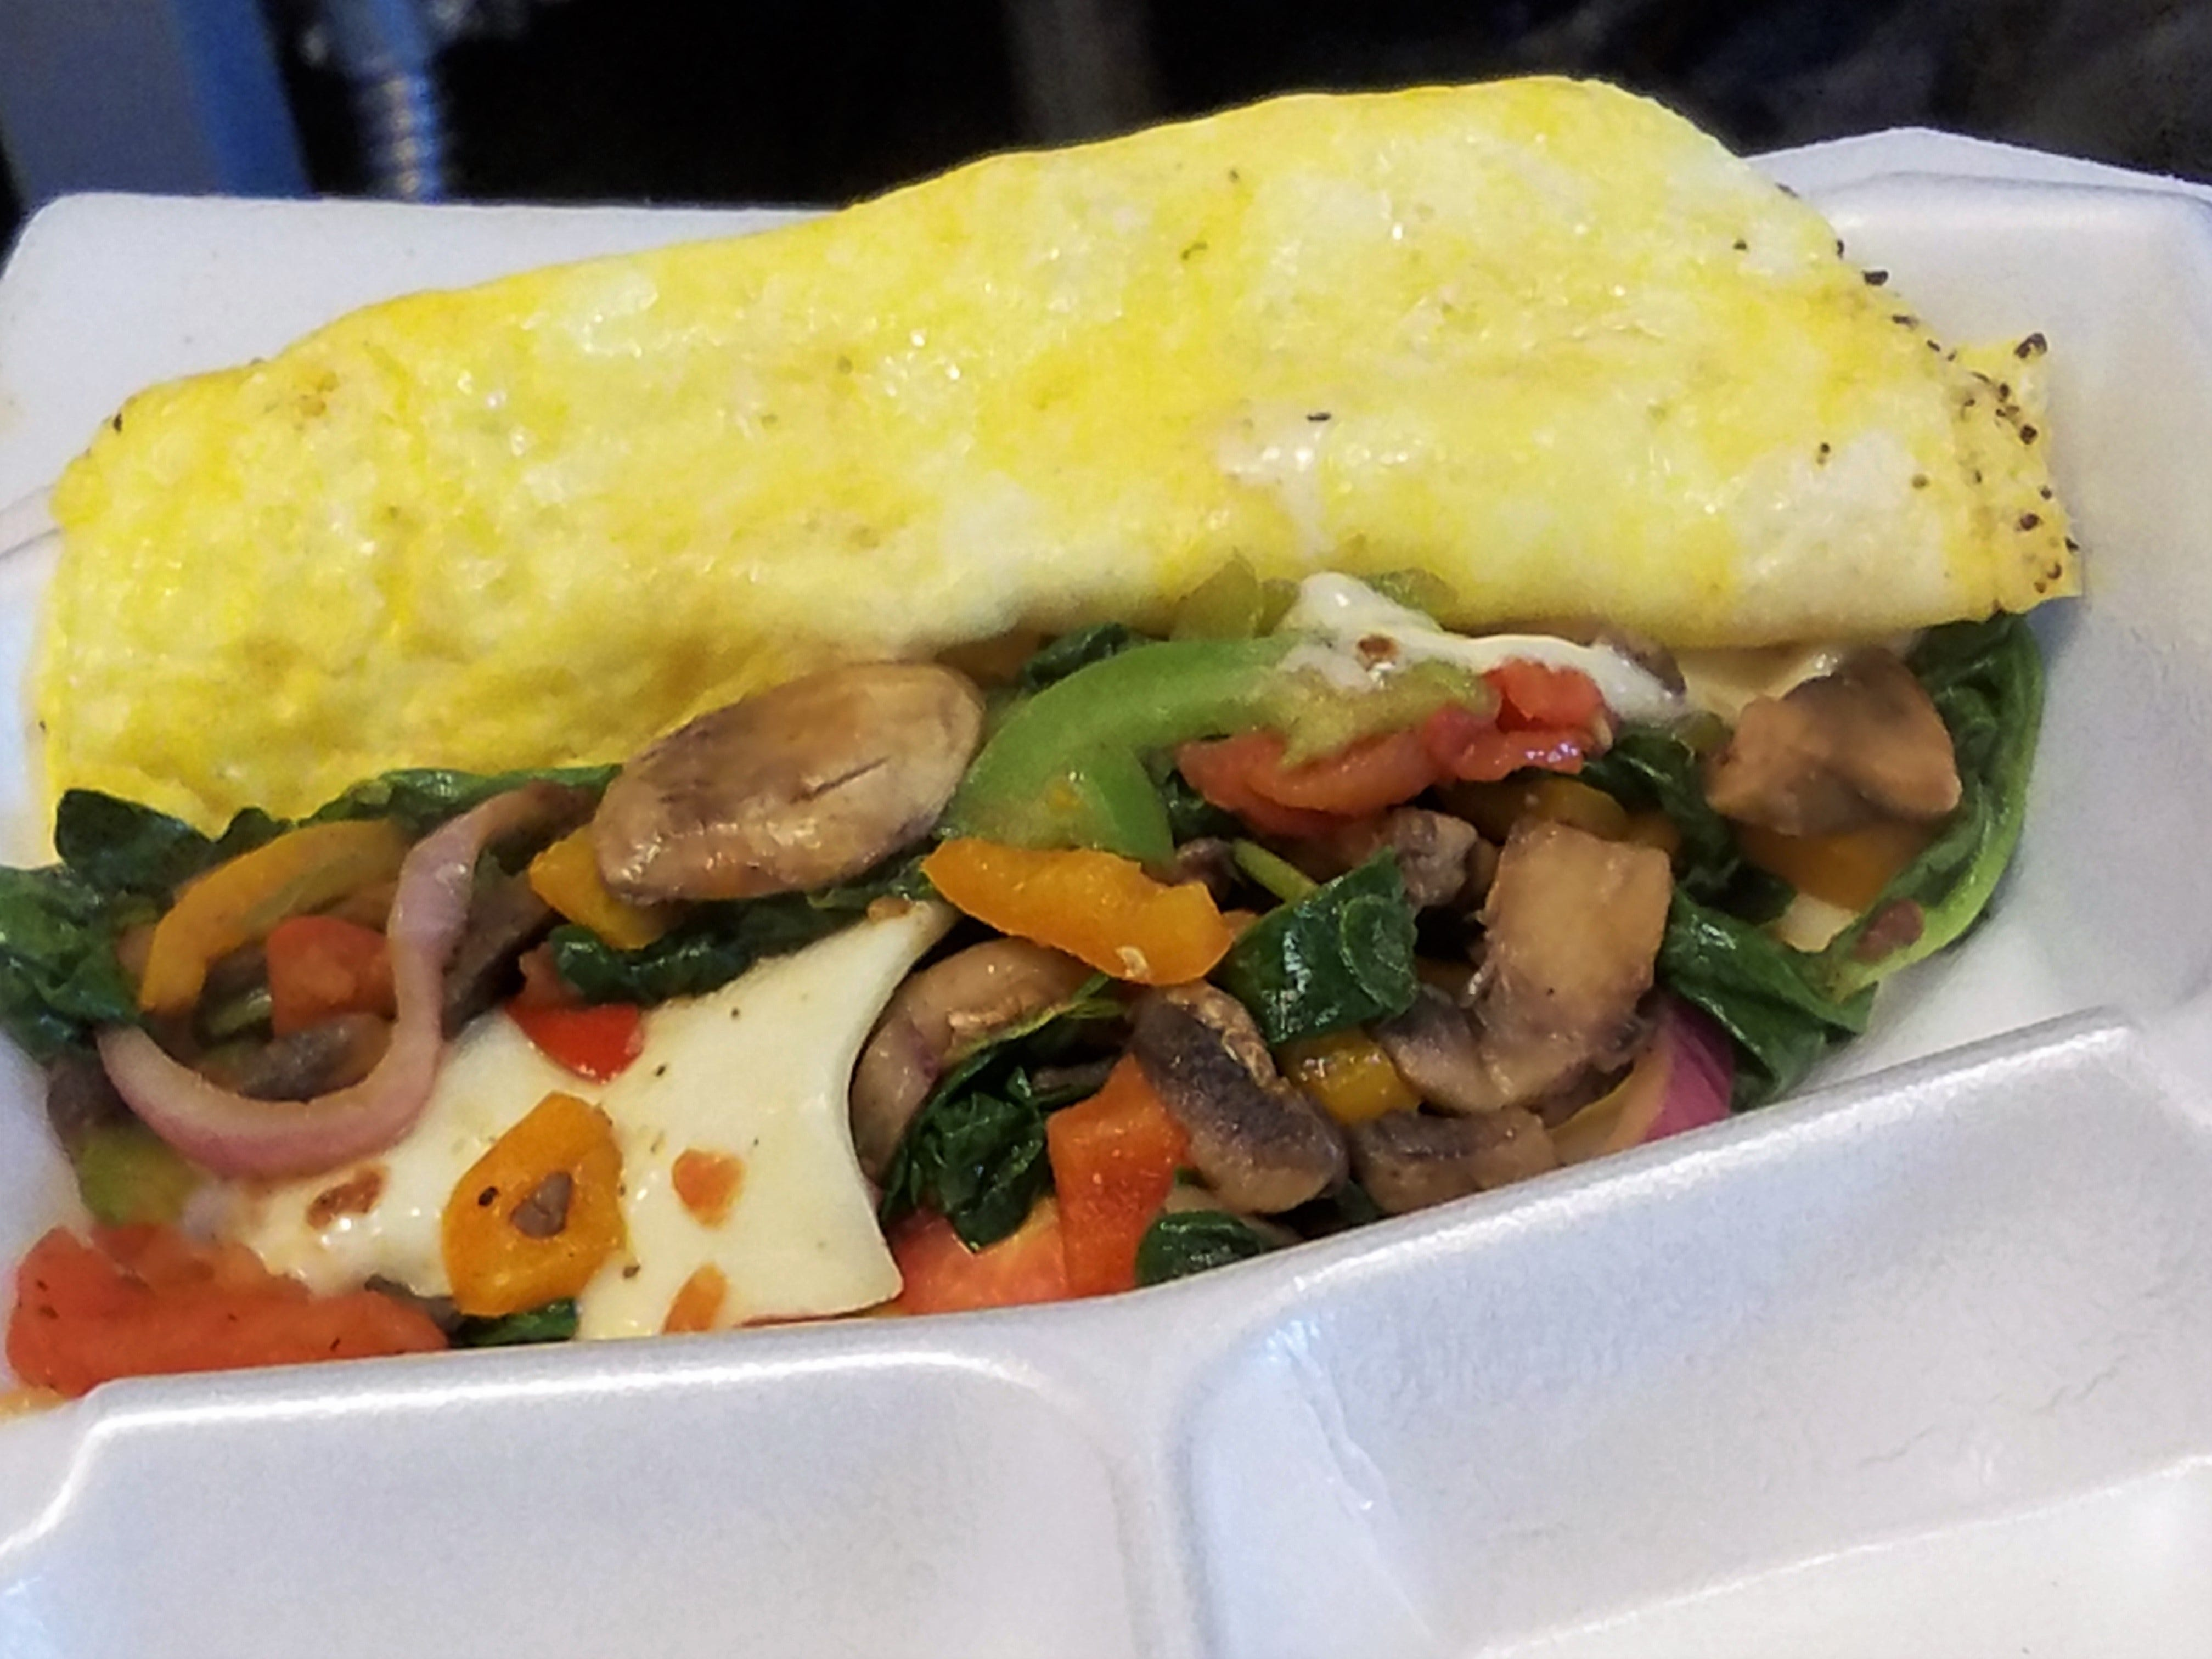 A veggie omelet from 6 a.m. in Eastland Mall.